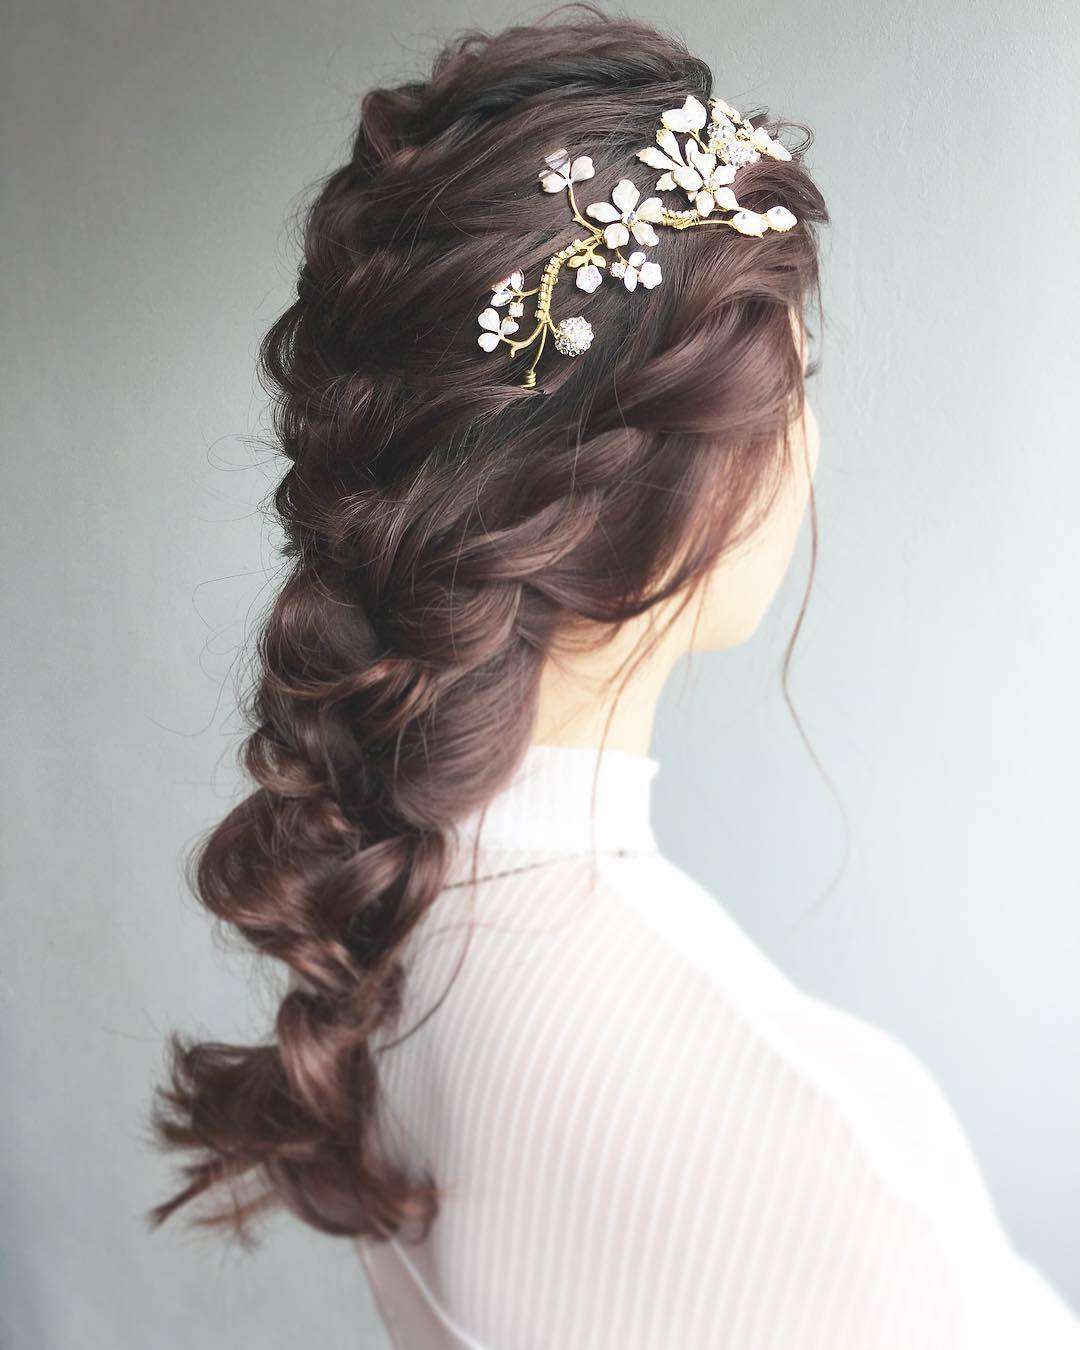 Bridal hairstyles: Woman with long mahogany coloured loose French braid with side flowers in it posing in a studio